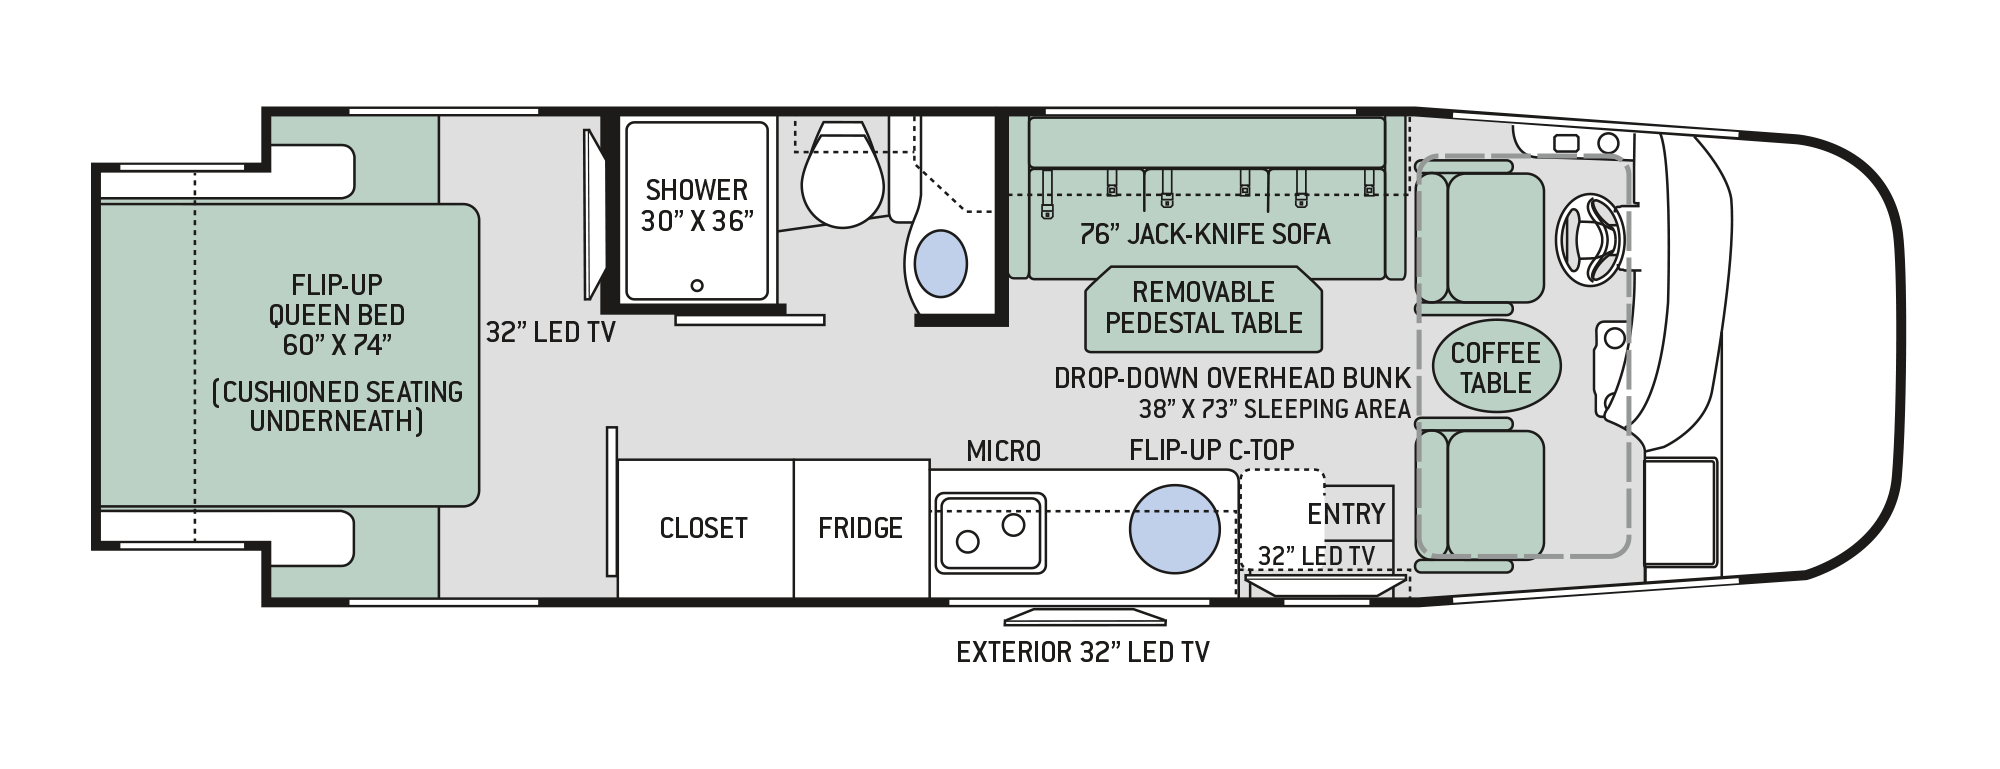 2018 Thor Vegas 25.2 Floor Plan